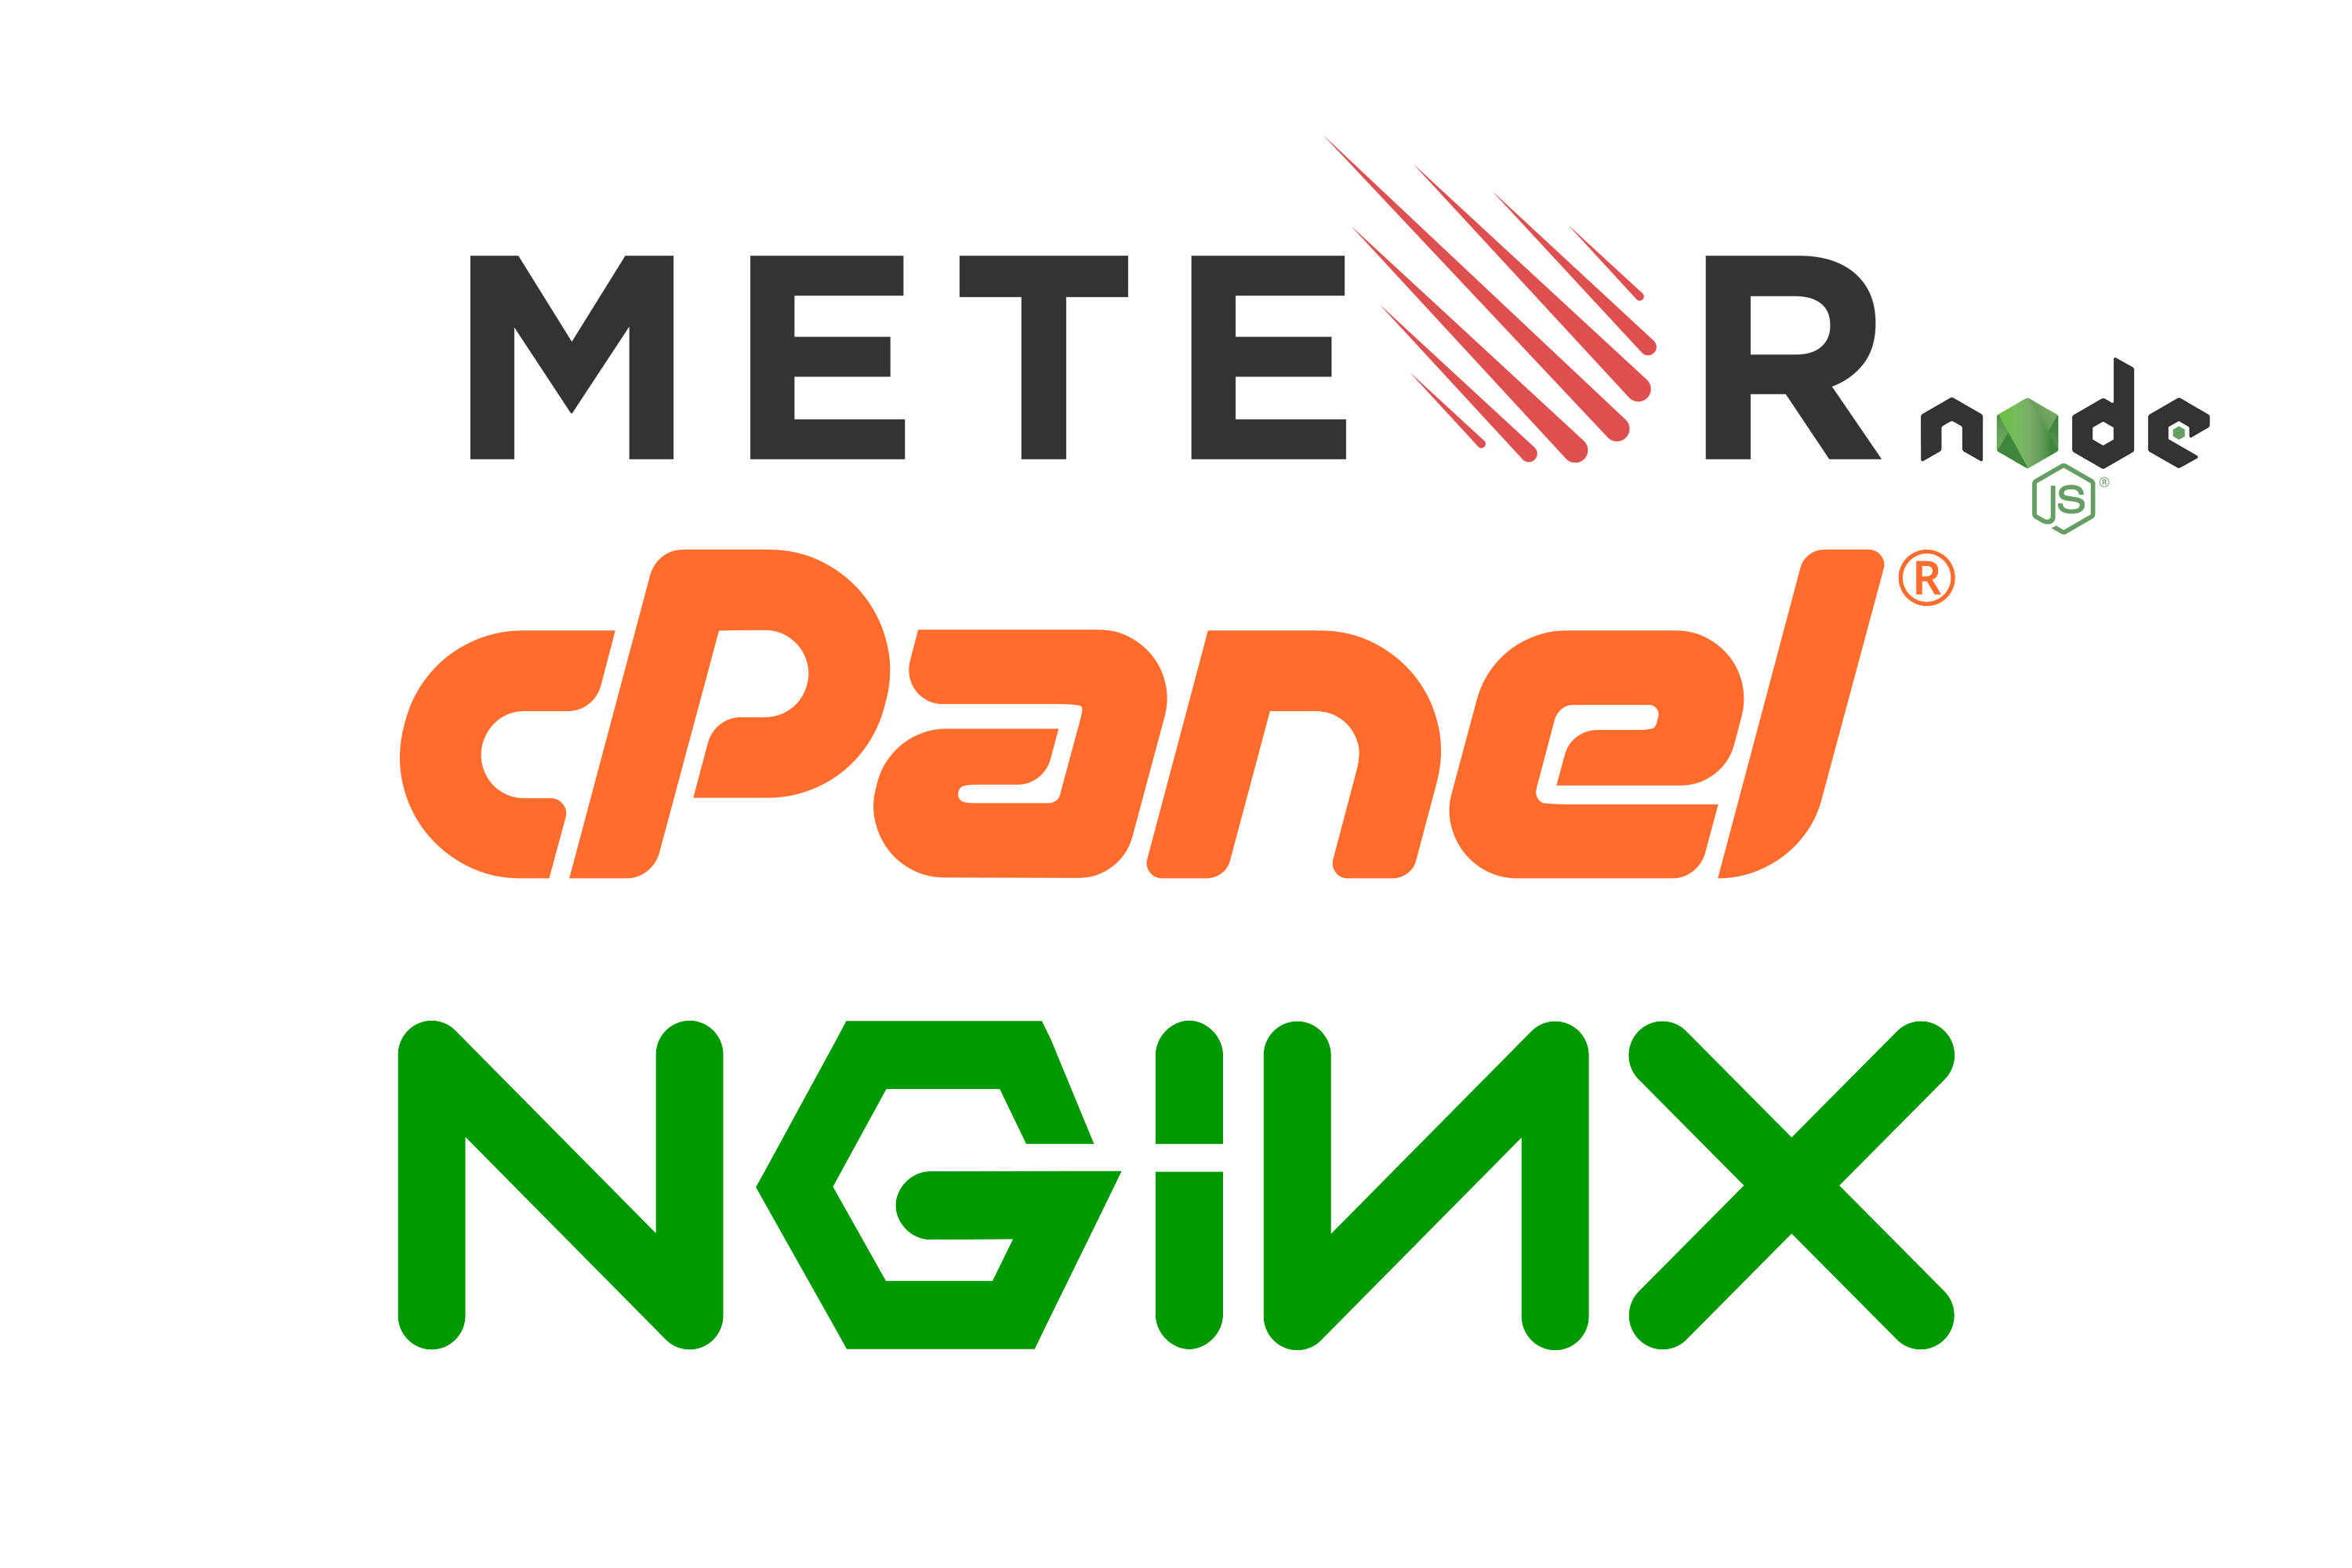 Meteor js png. Is it possible to